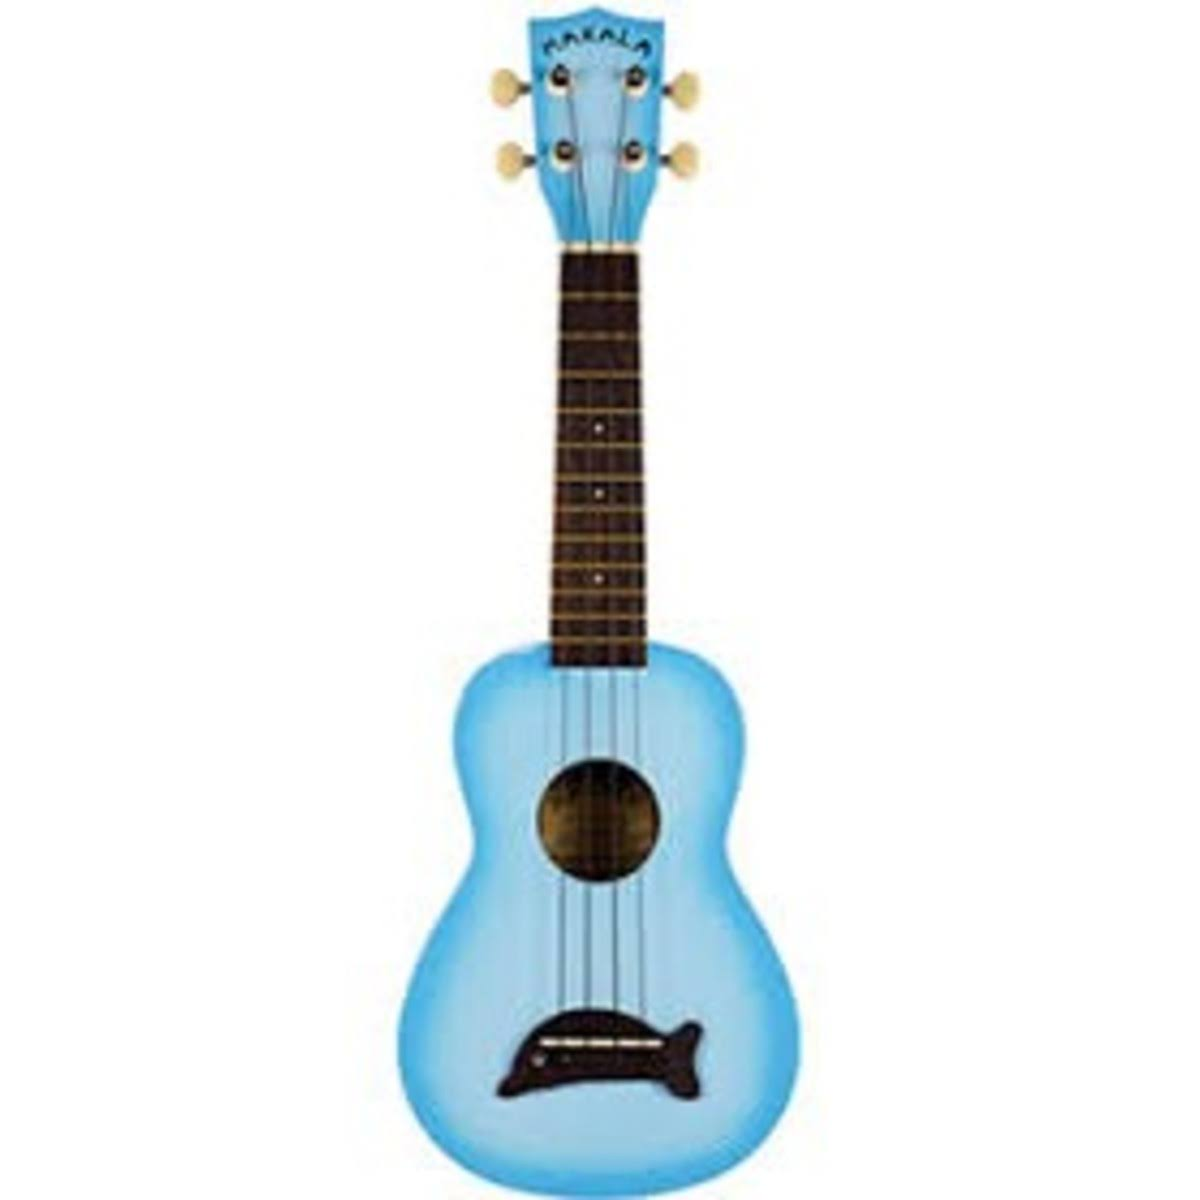 Kala \Makala Dolphin Ukulele - Soprano, Light Blue Burst Gloss